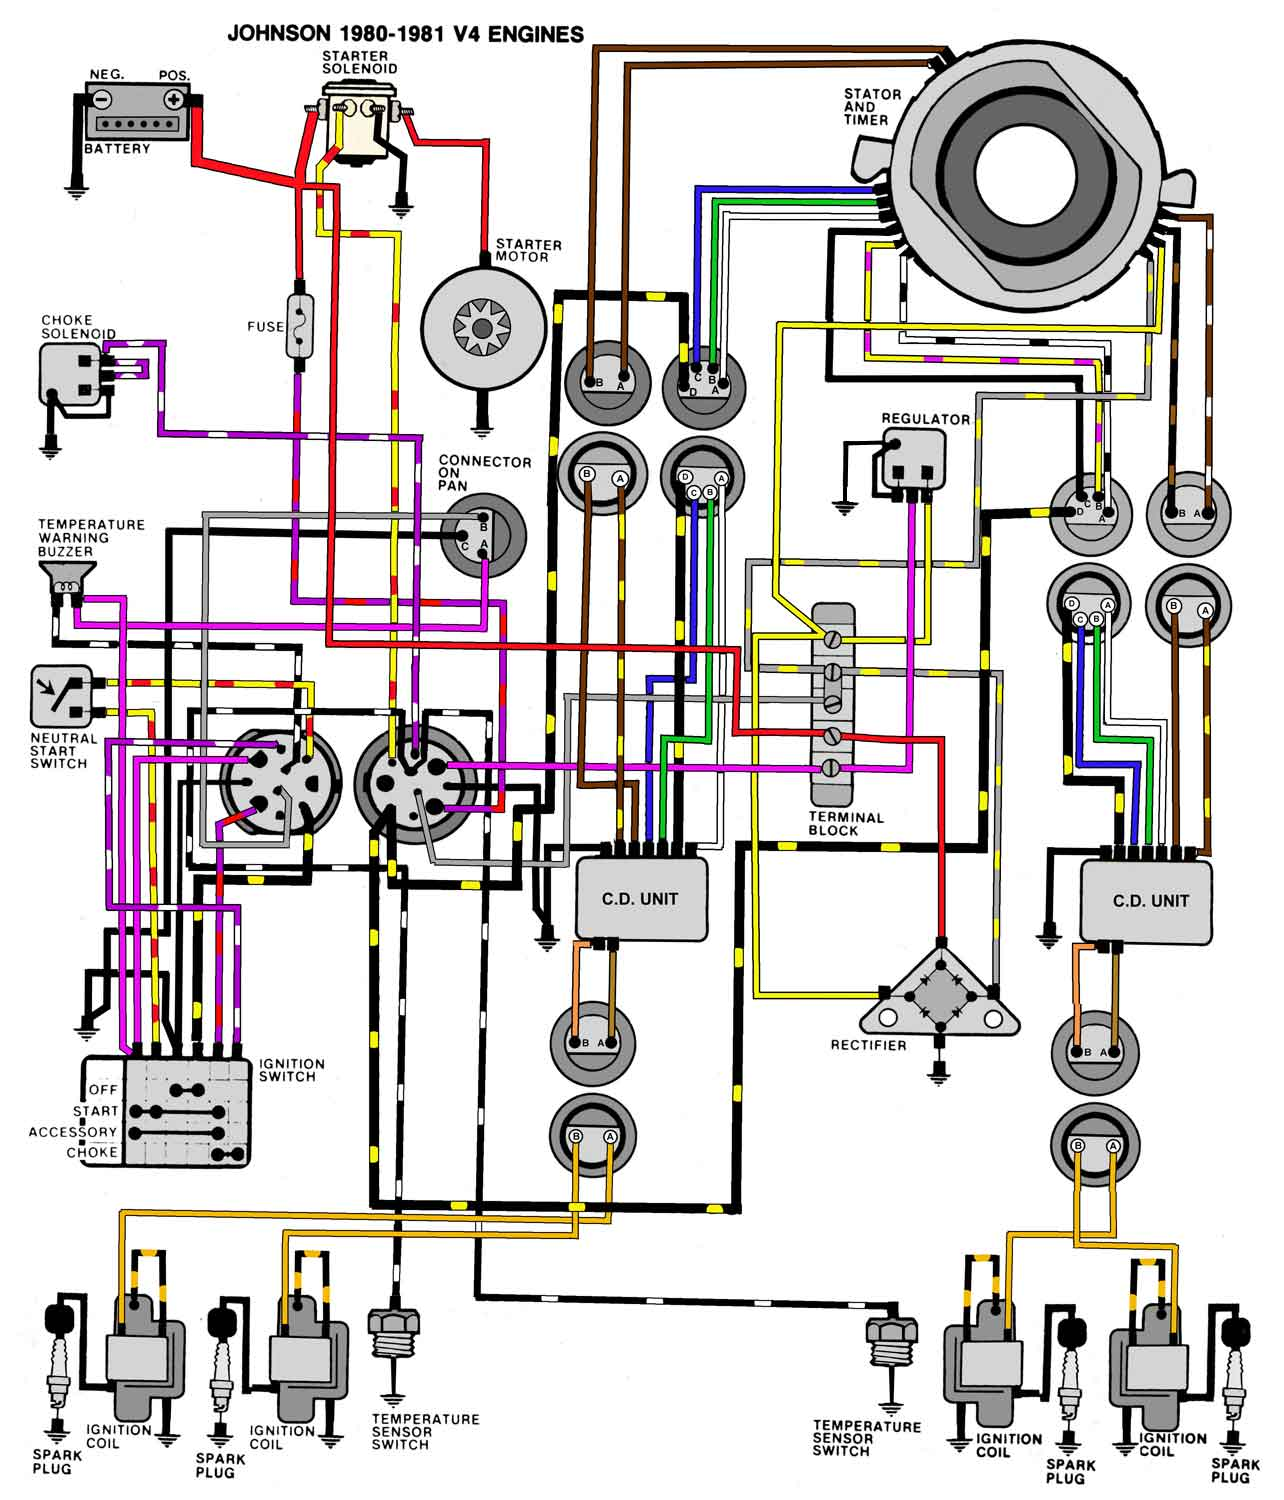 hight resolution of johnson outboard wiring schematics detailed schematics diagram rh jppastryarts com 1998 johnson 90 hp wiring diagram